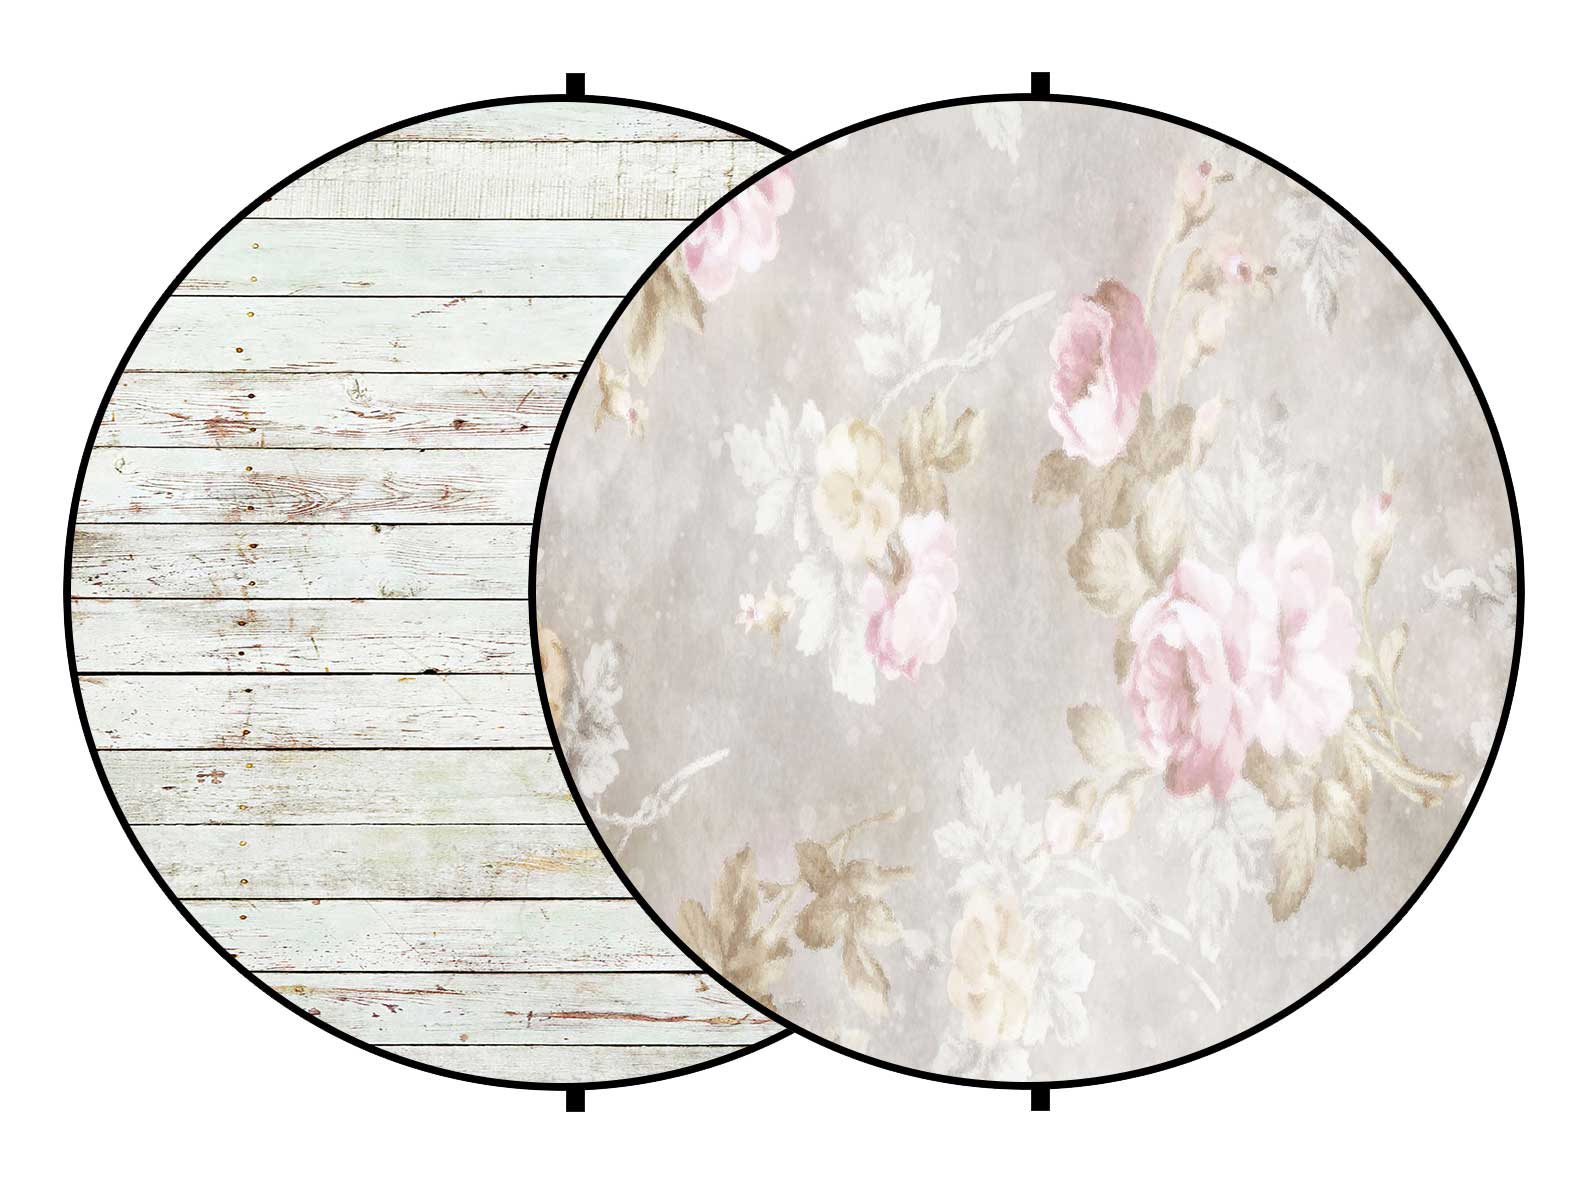 Fox Wood/ Vintage Flowers Collapsible Photography Backdrop 5x5ft(1.5x1.5m)